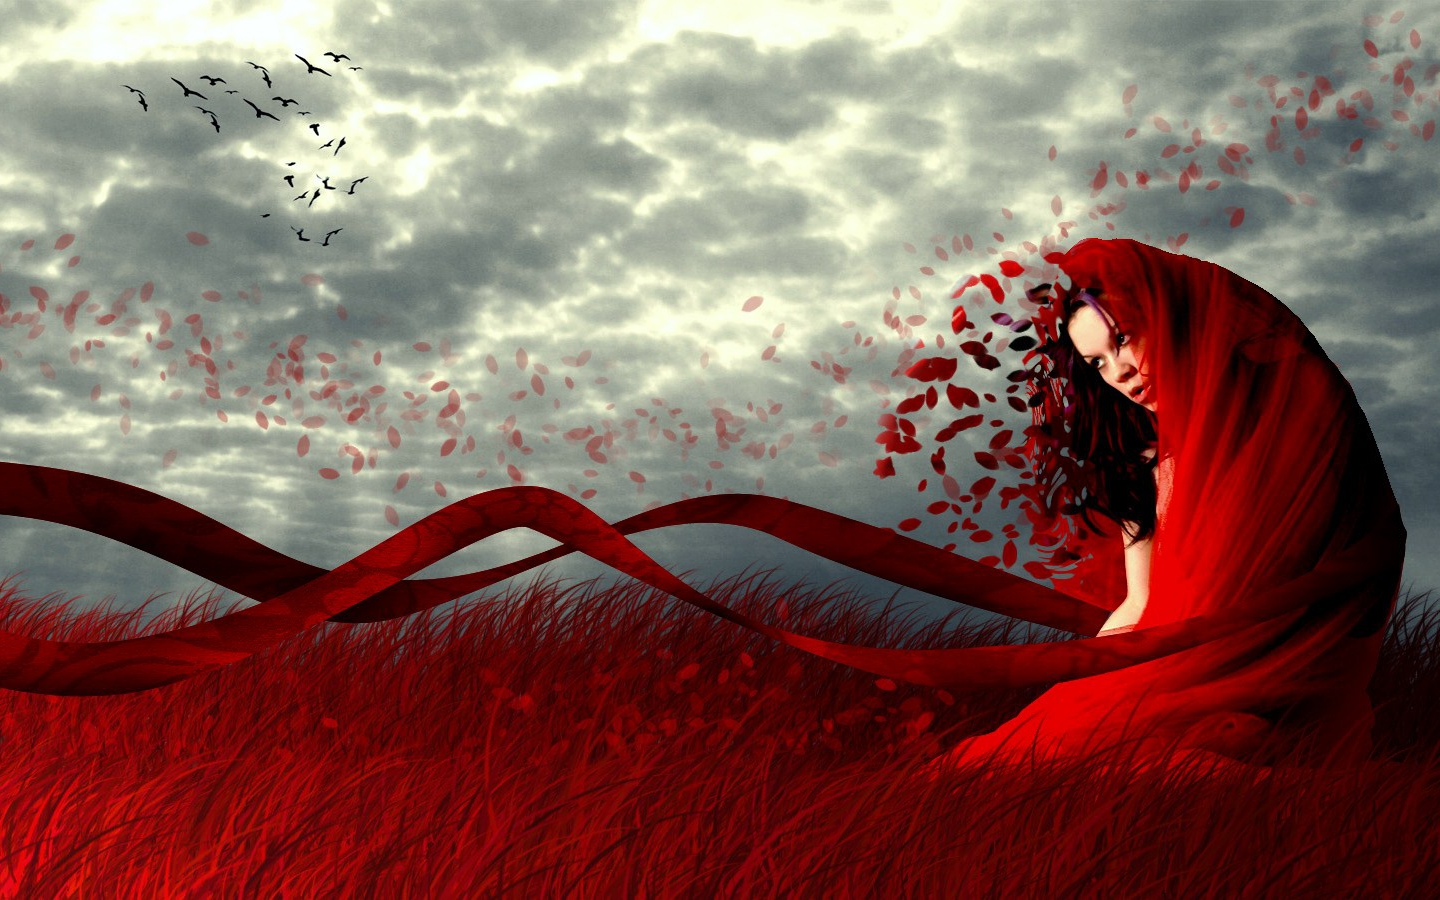 Love Wallpaper Deviantart : Woman in red - Random Wallpaper (29290969) - Fanpop